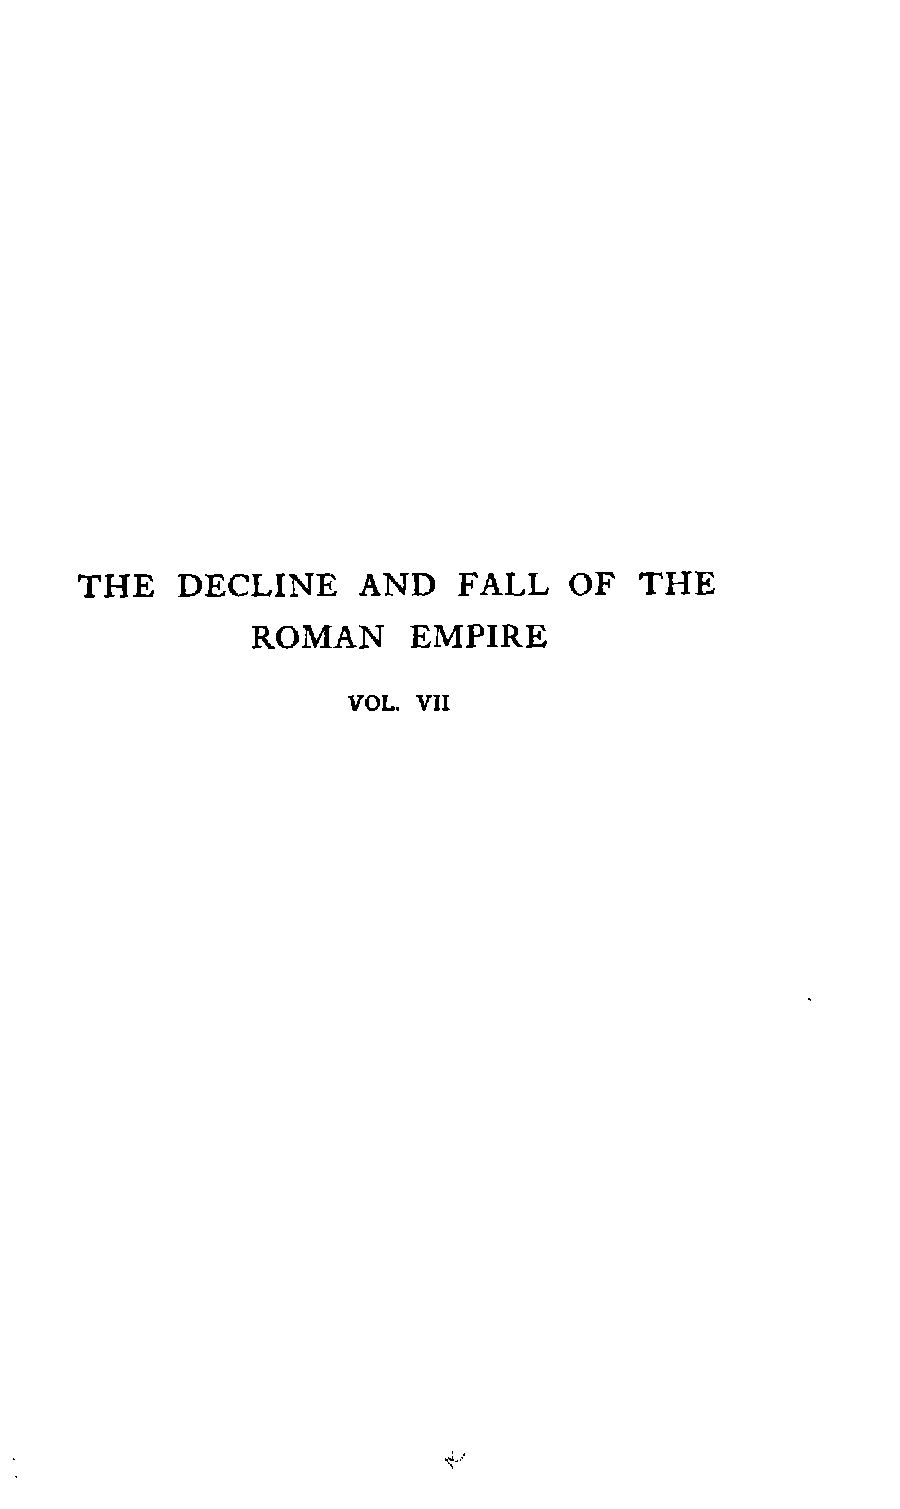 fe97161c05 Calaméo - The History of the Decline and Fall of the Roman Empire ...